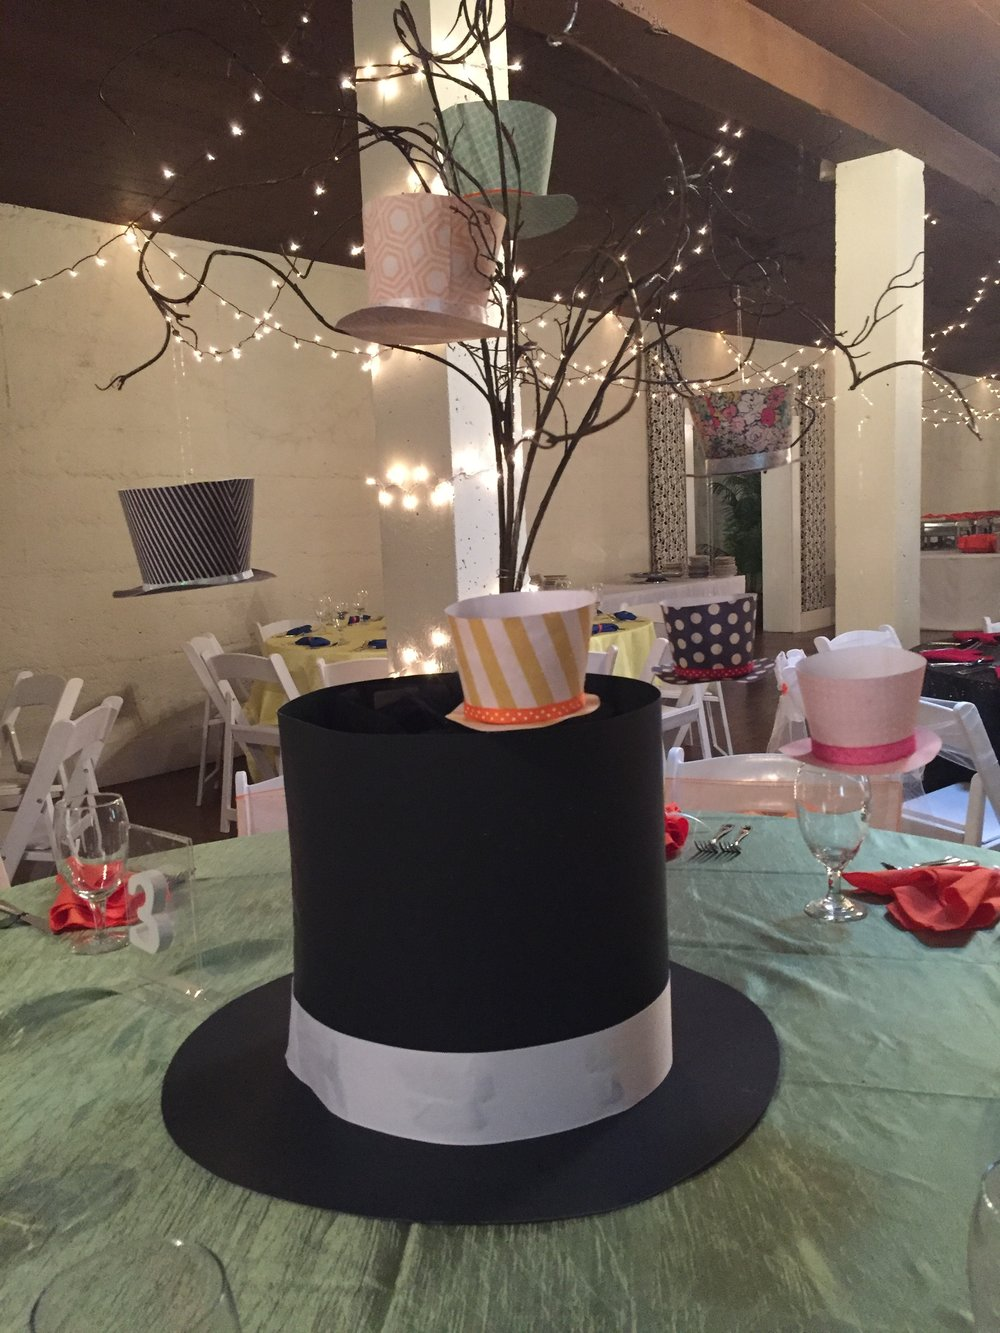 The Mad Hatter table was decorated with a giant top hat and smaller hanging top hats- Wonderland is nothing if not over the top!